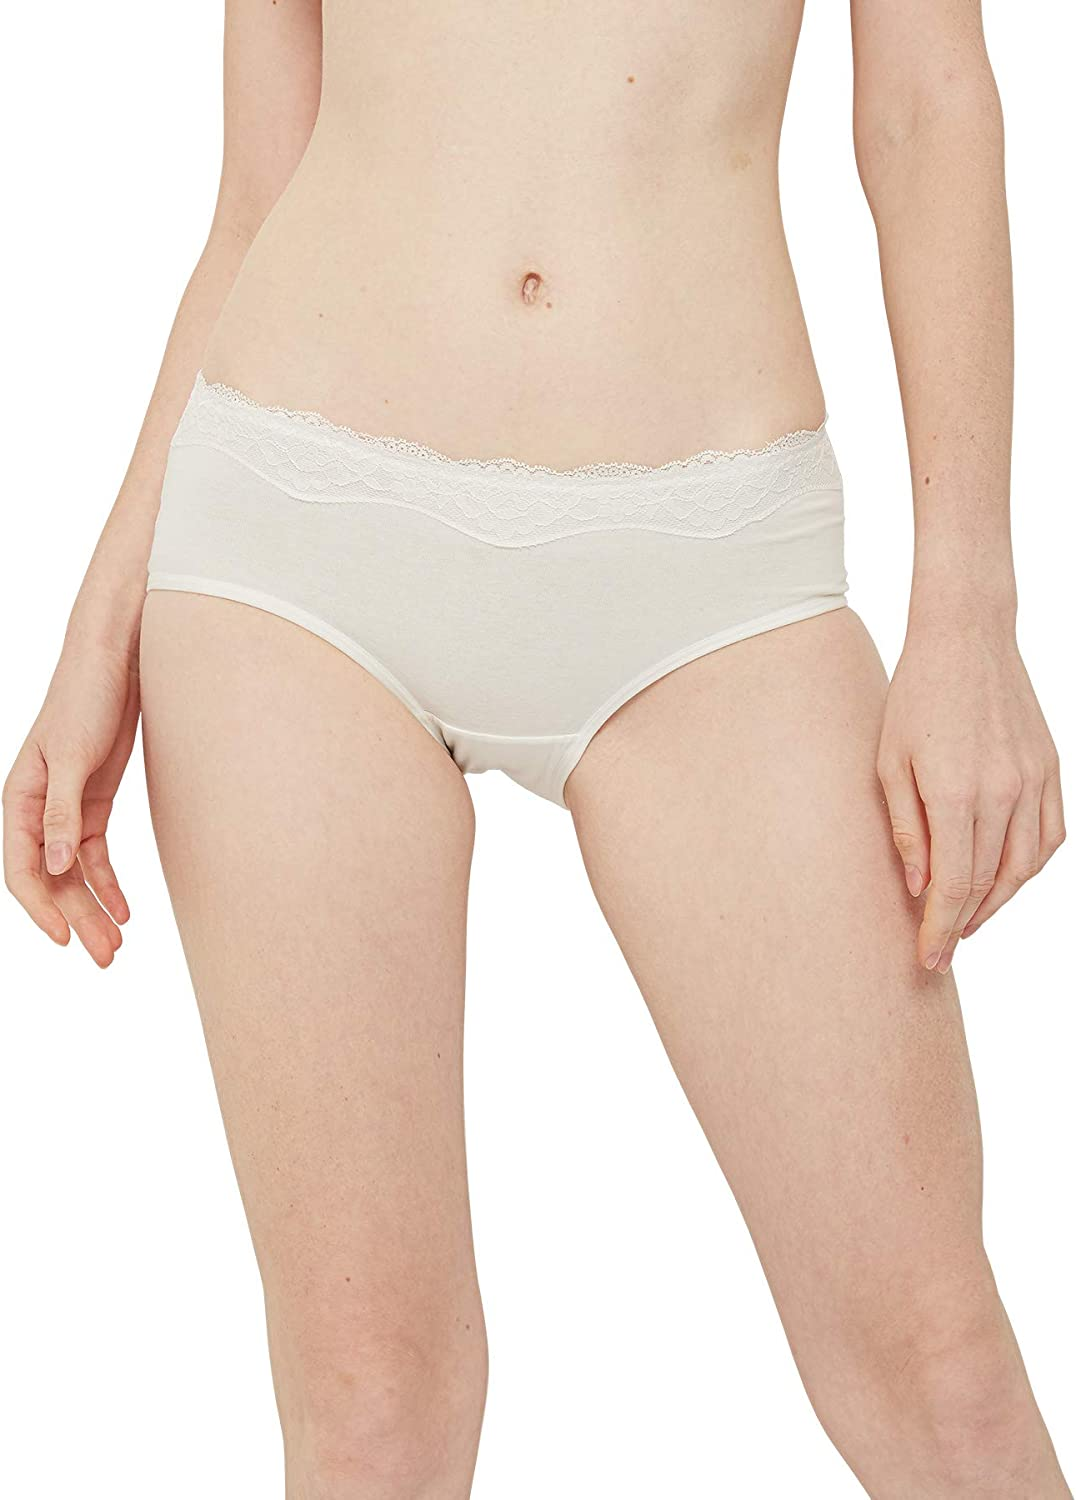 INNERSY Womens Lace Underwear Cotton Hipster Panties Regular /& Plus Size 6-Pack